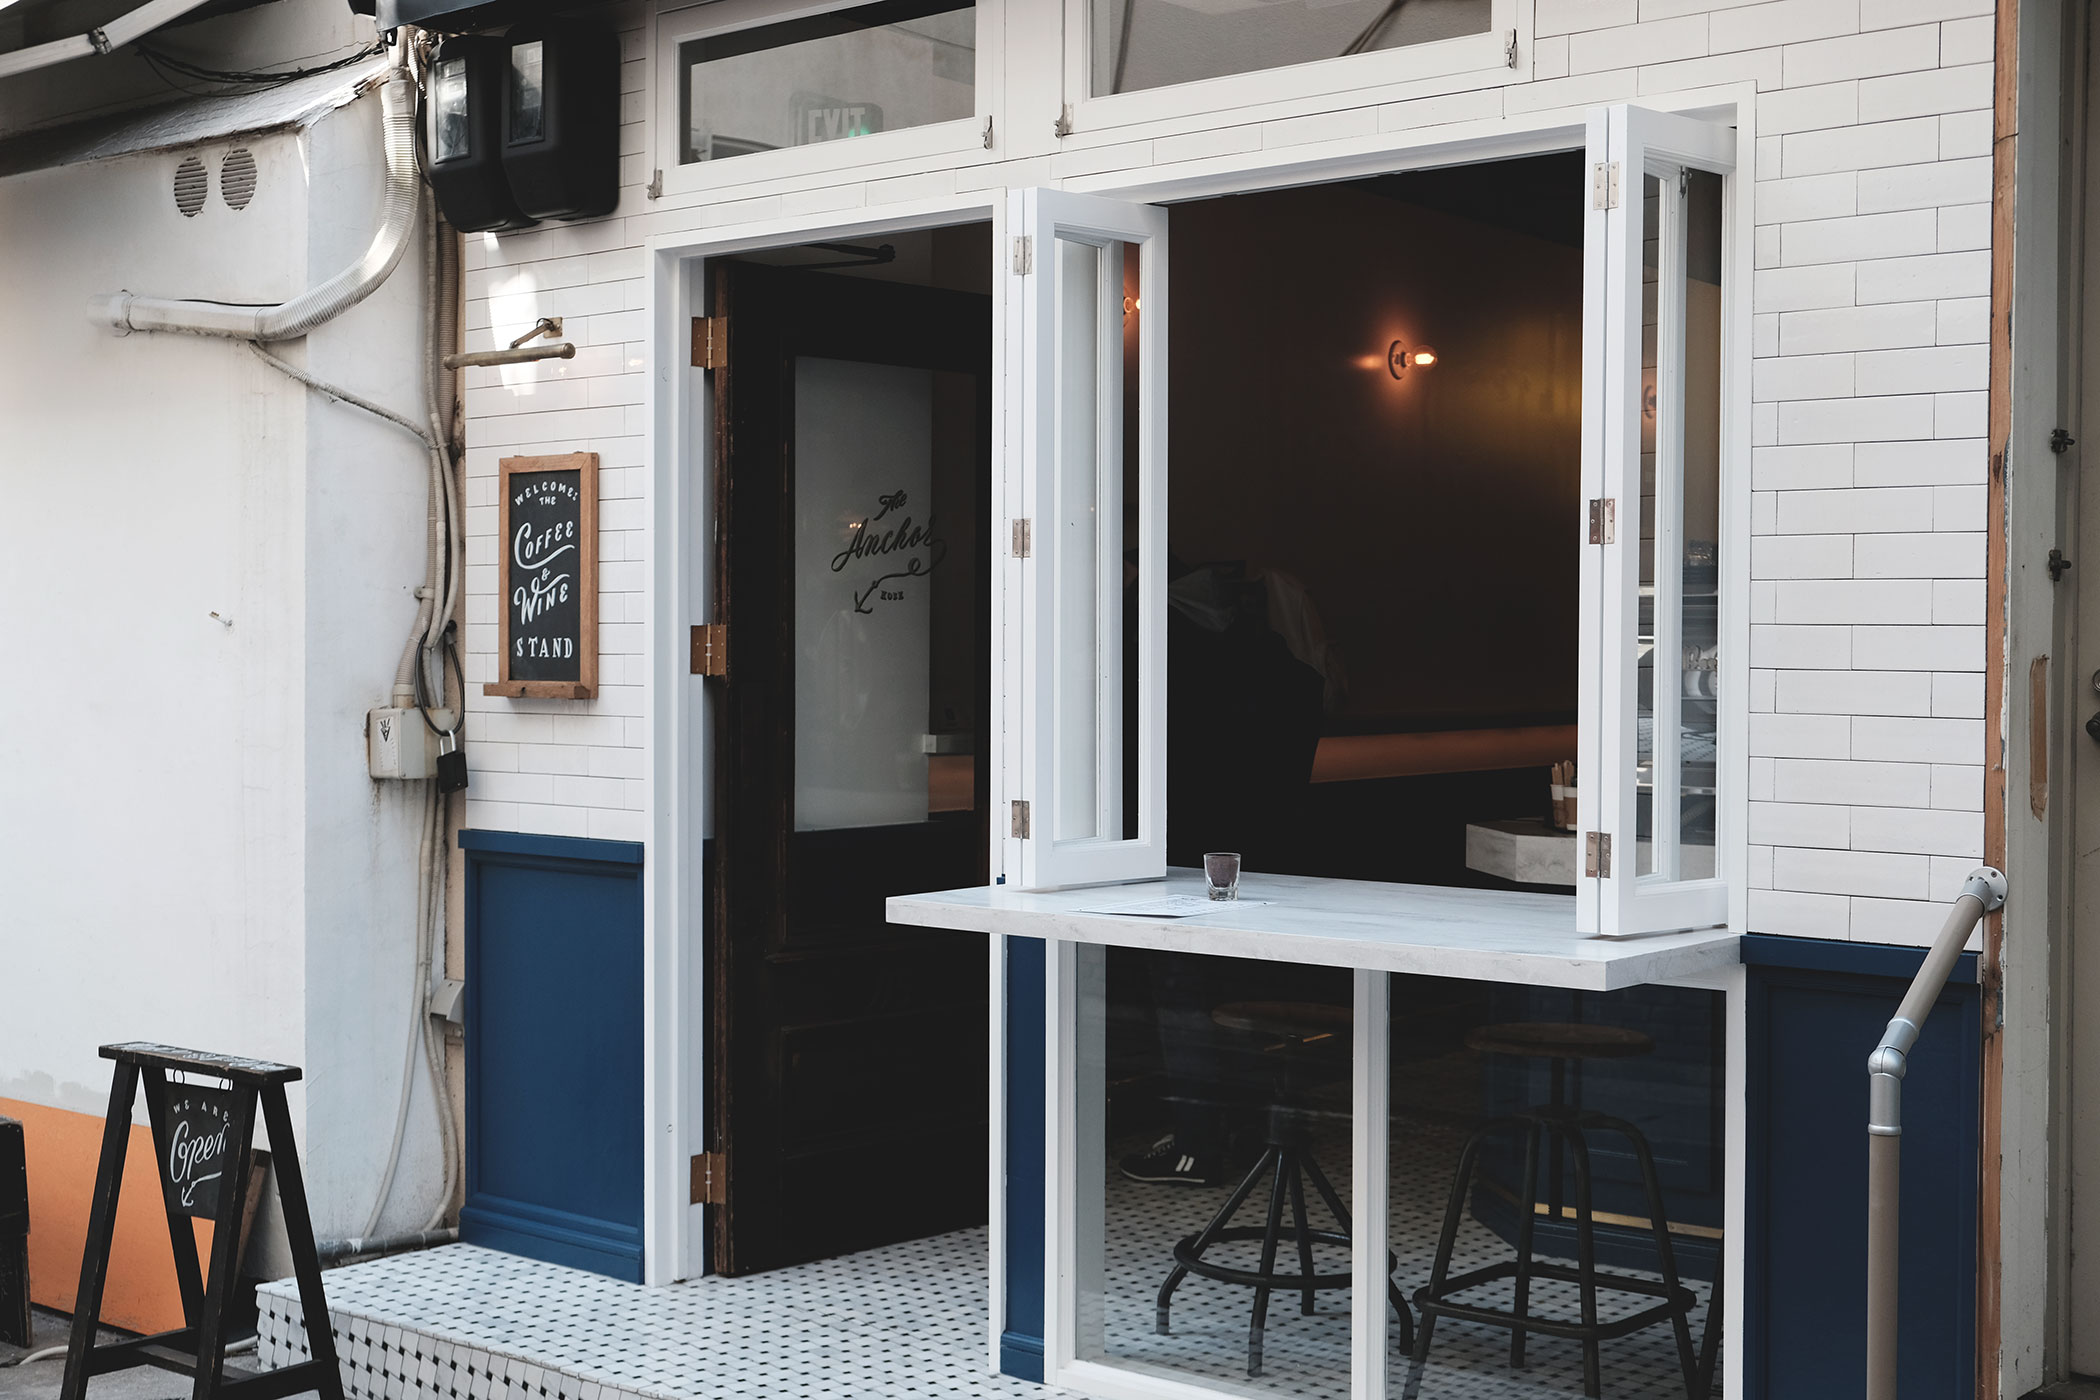 The Anchor Coffee & Wine Stand 神戸